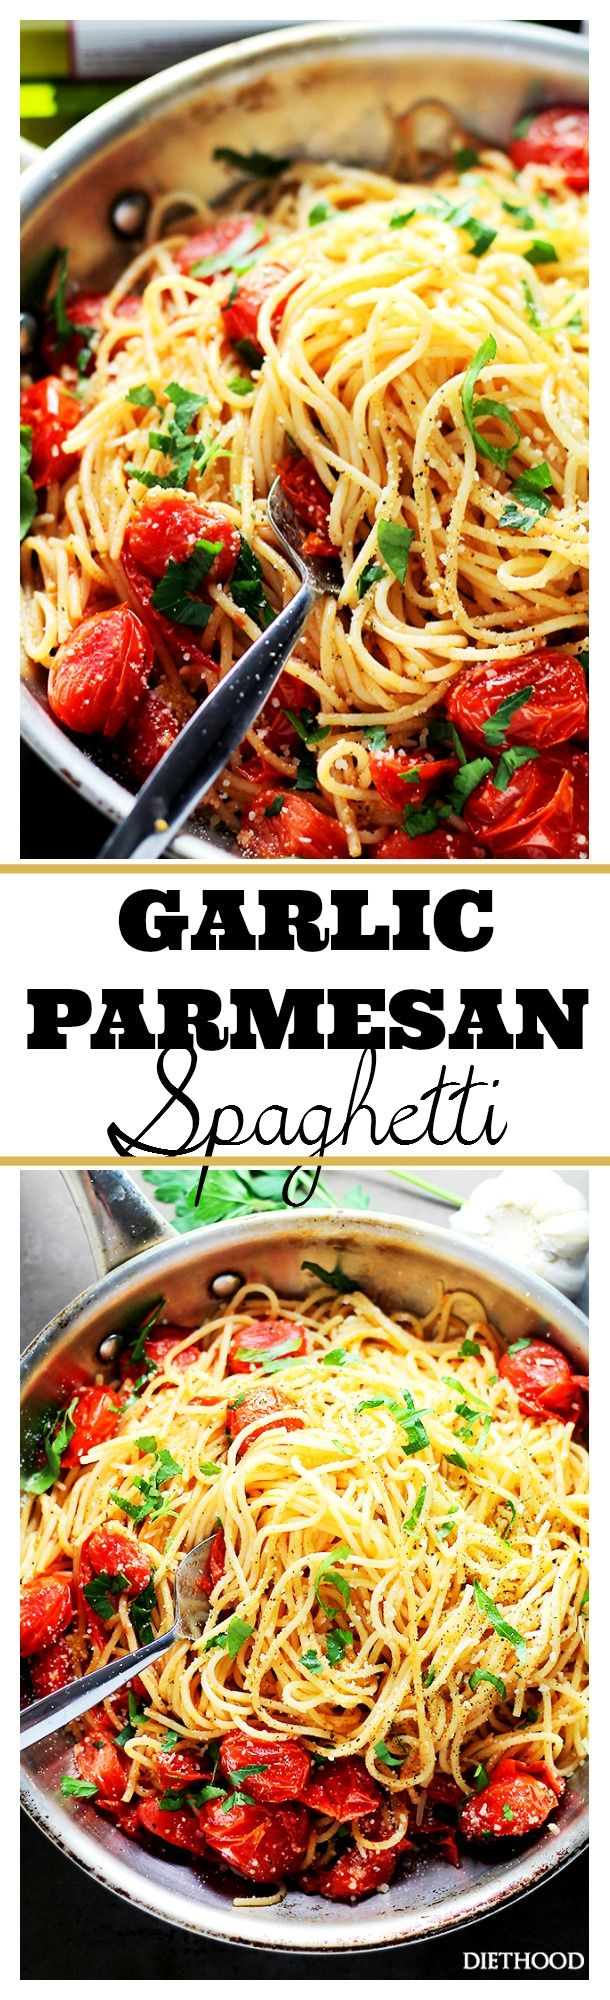 Garlic Parmesan Spaghetti with Blistered Tomatoes -  Tossed in roasted garlic oil, blistered tomatoes and a handful of parmesan cheese, these easy, 20-minute Garlic Parmesan Spaghetti are THE best!